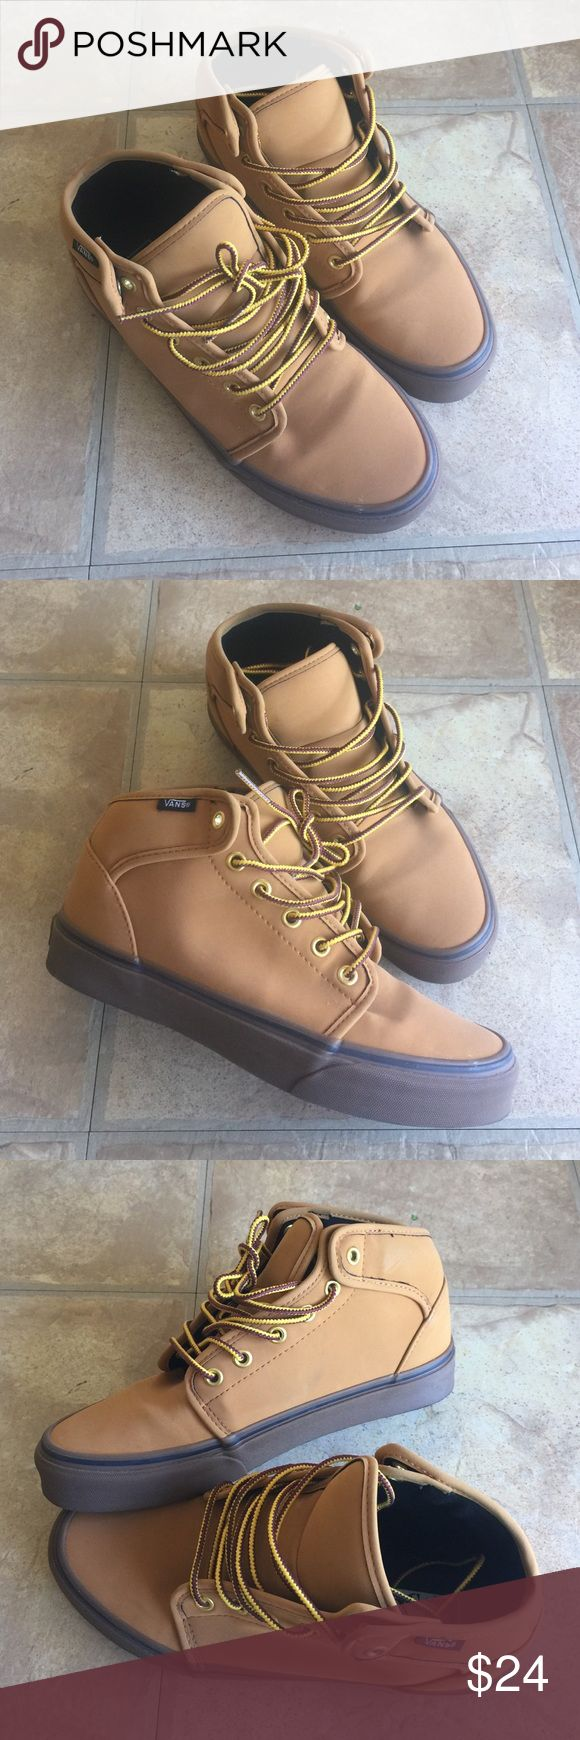 Vans classic brown Leather Bedford Very good condition. Barely wore. Vans Shoes Sneakers